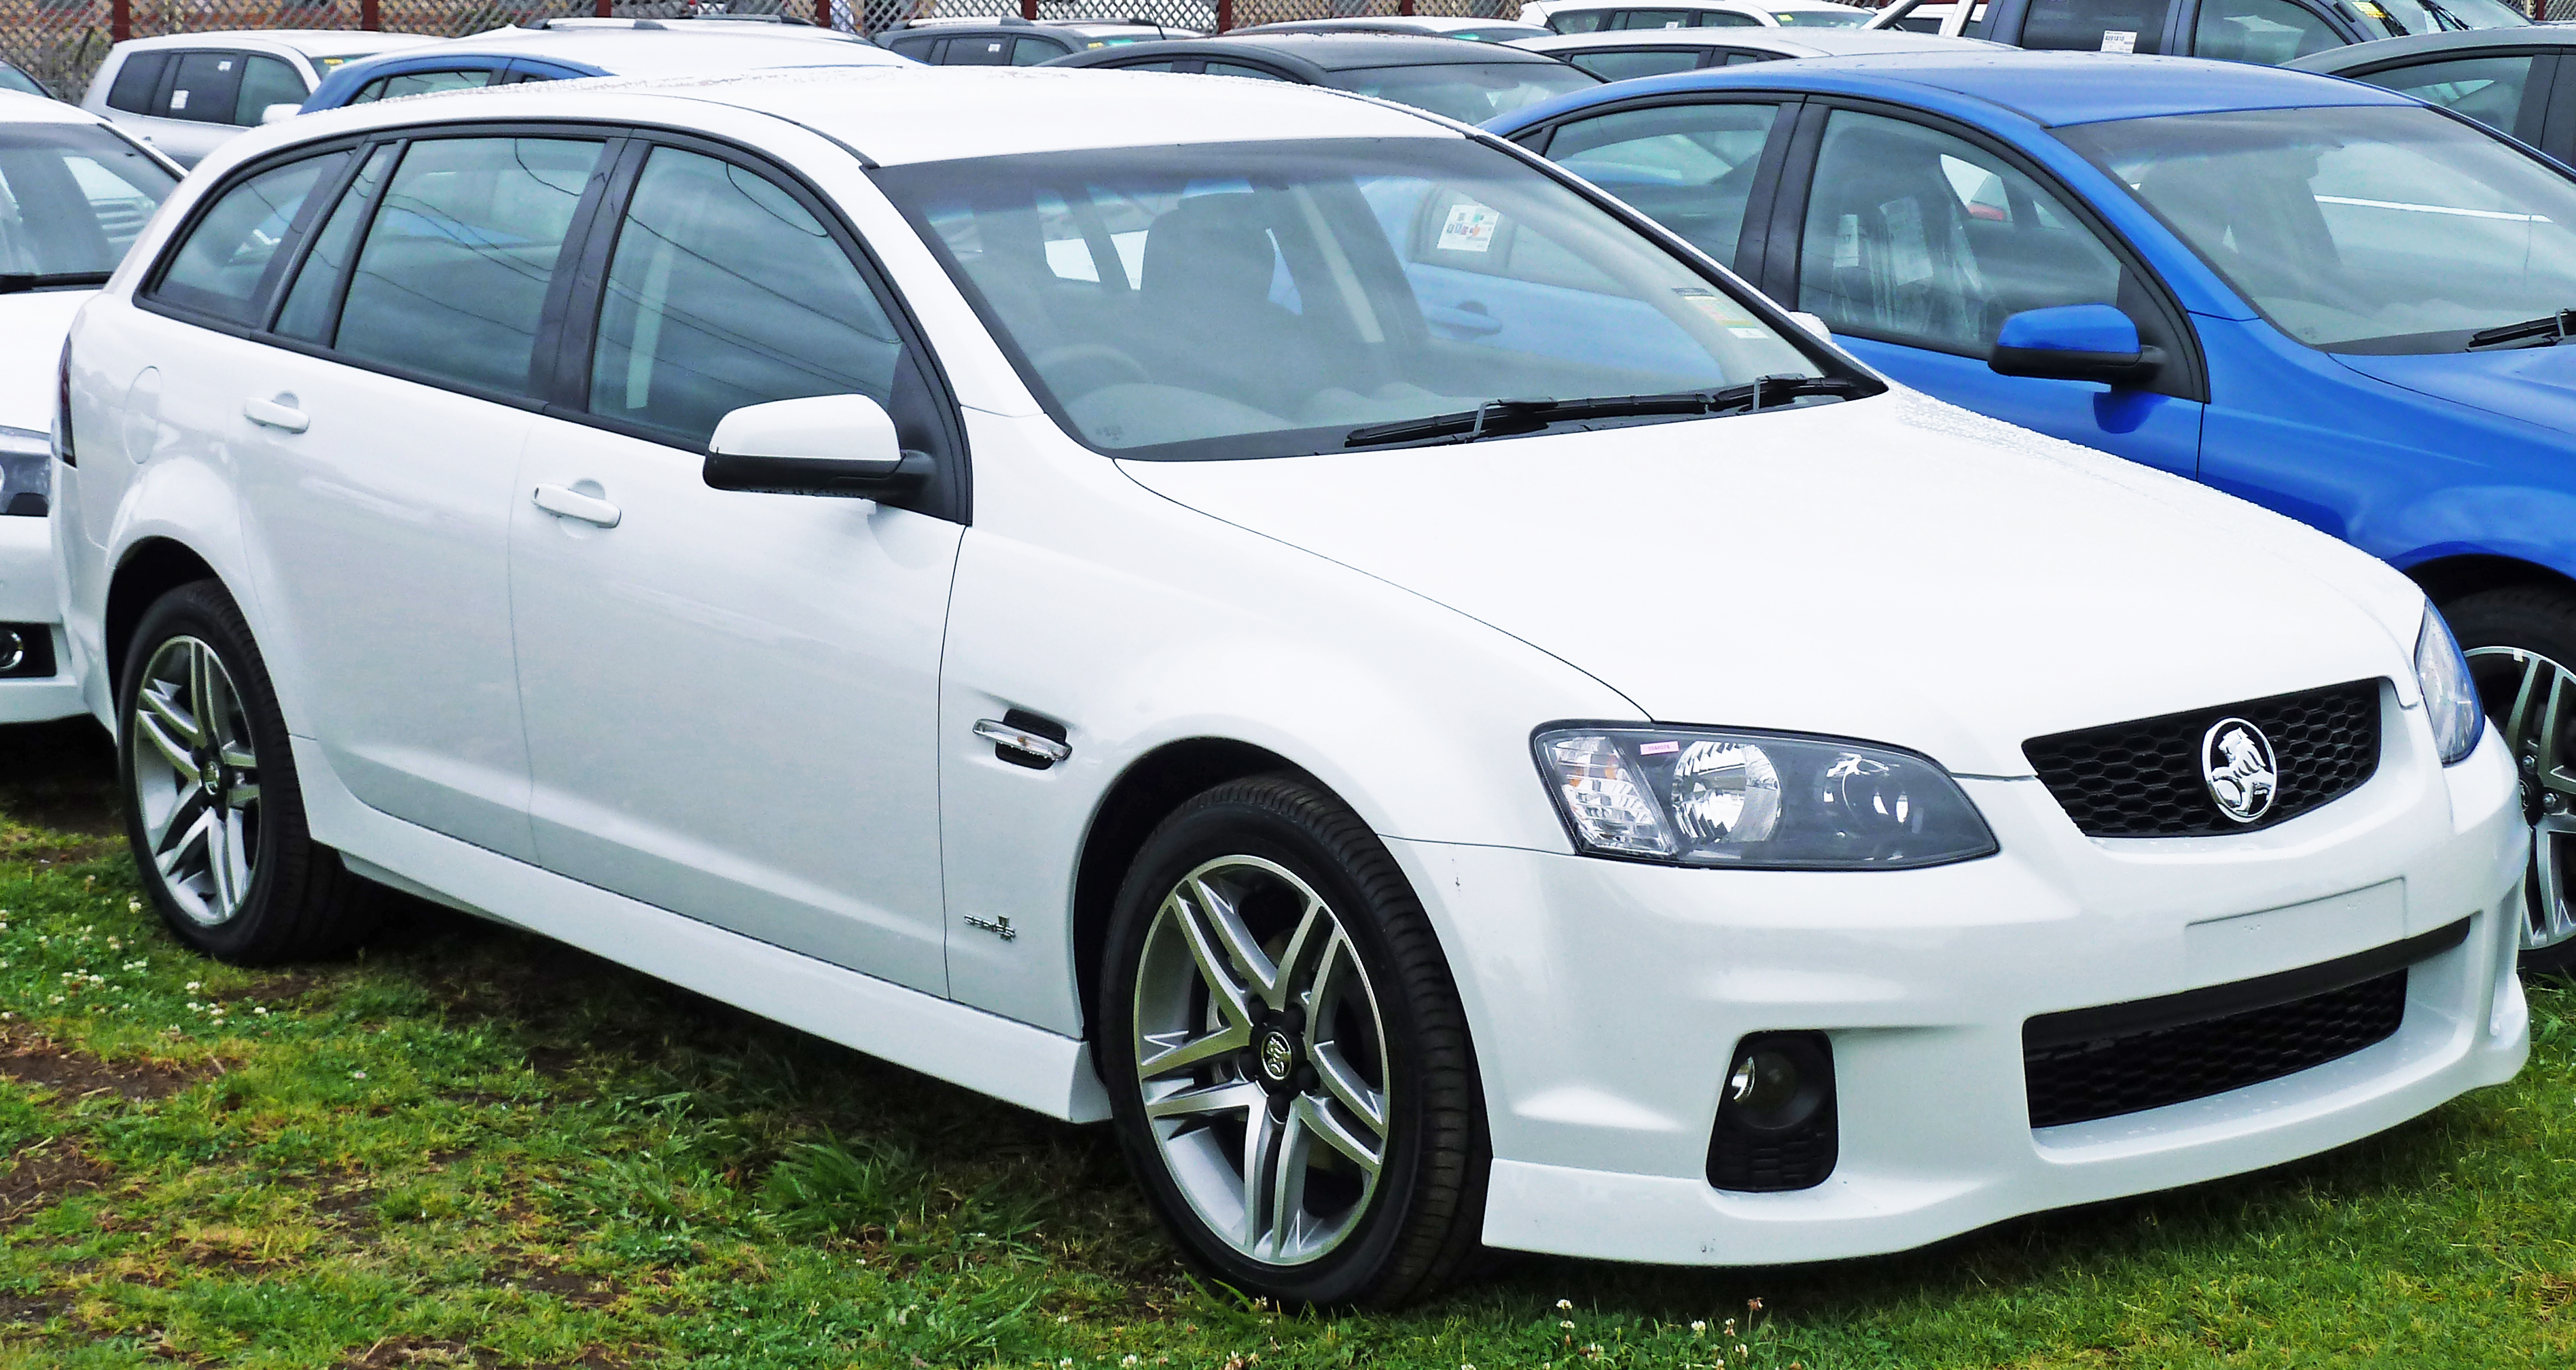 100 ideas holden commodore sports wagon on evadete file2010 holden ve ii commodore my11 sv6 sportwagon 01jpg vanachro Image collections